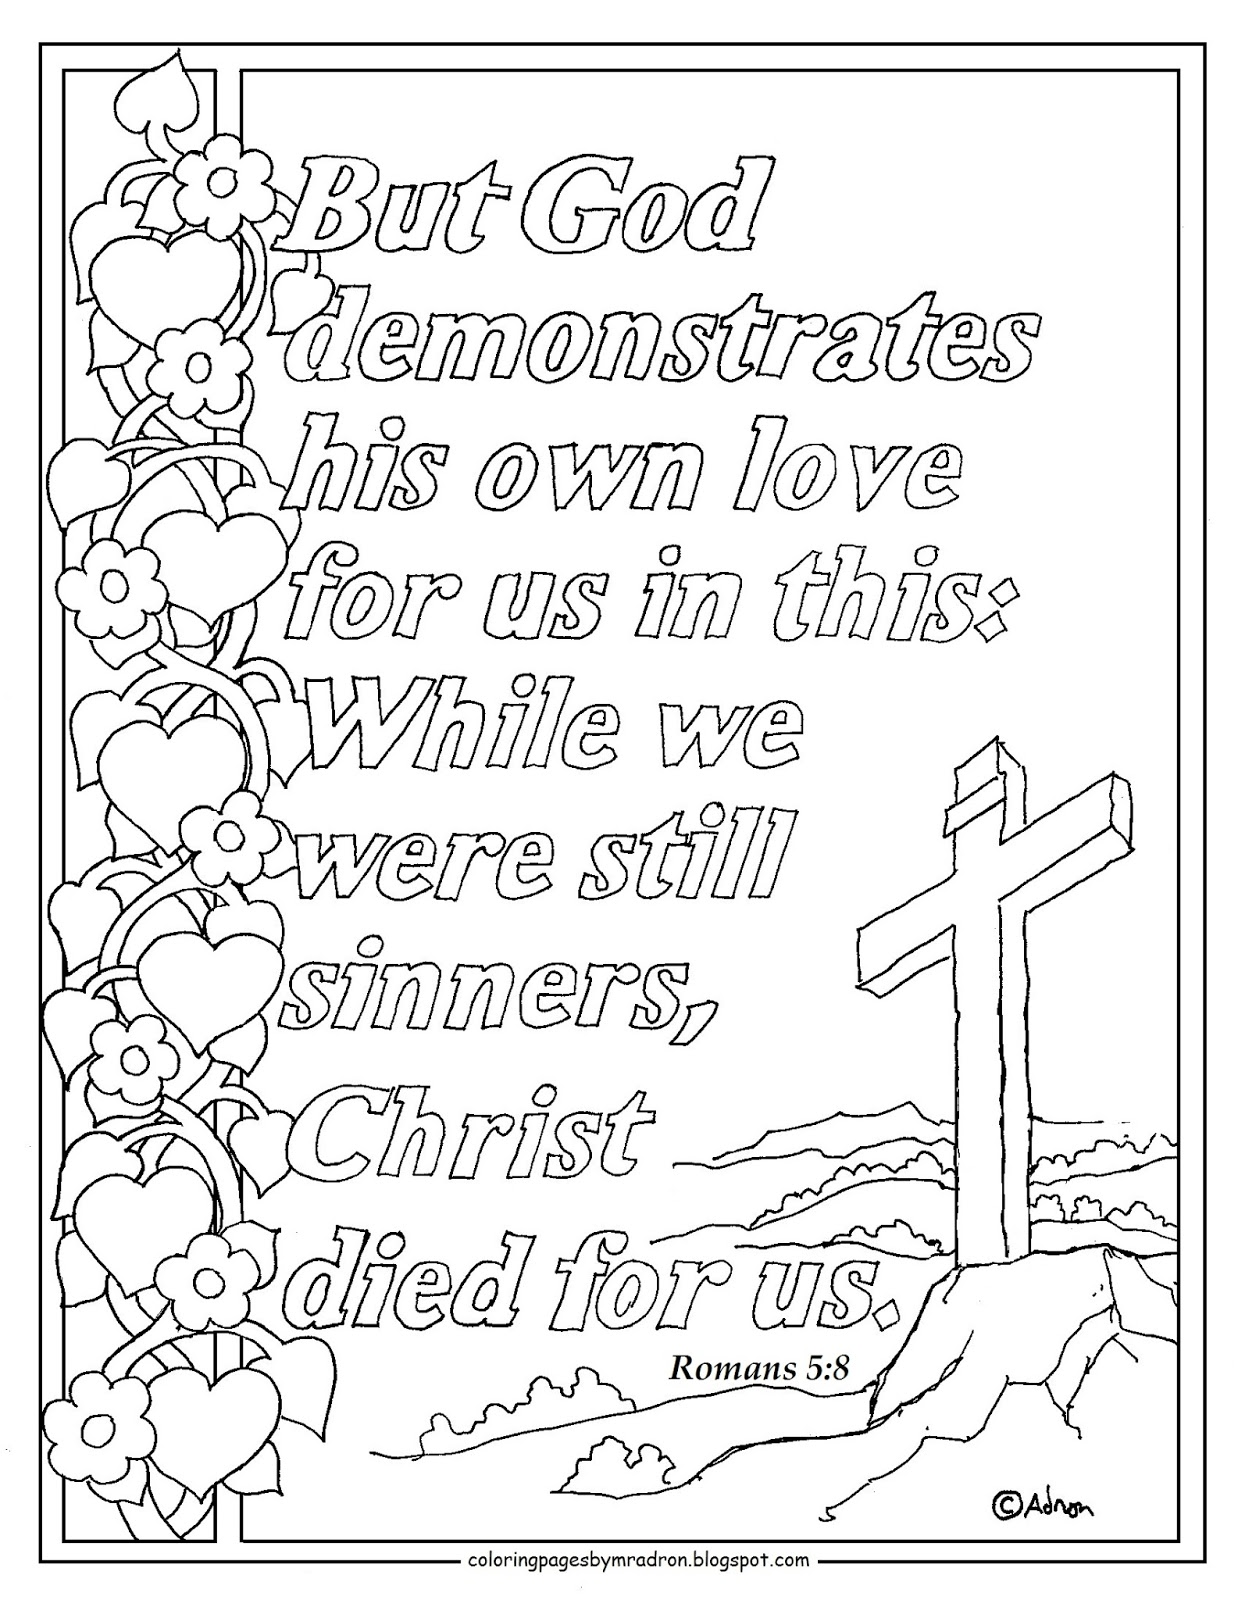 romans 5 8 coloring sheet pirate girl memory verse monday romans sheet 8 5 coloring